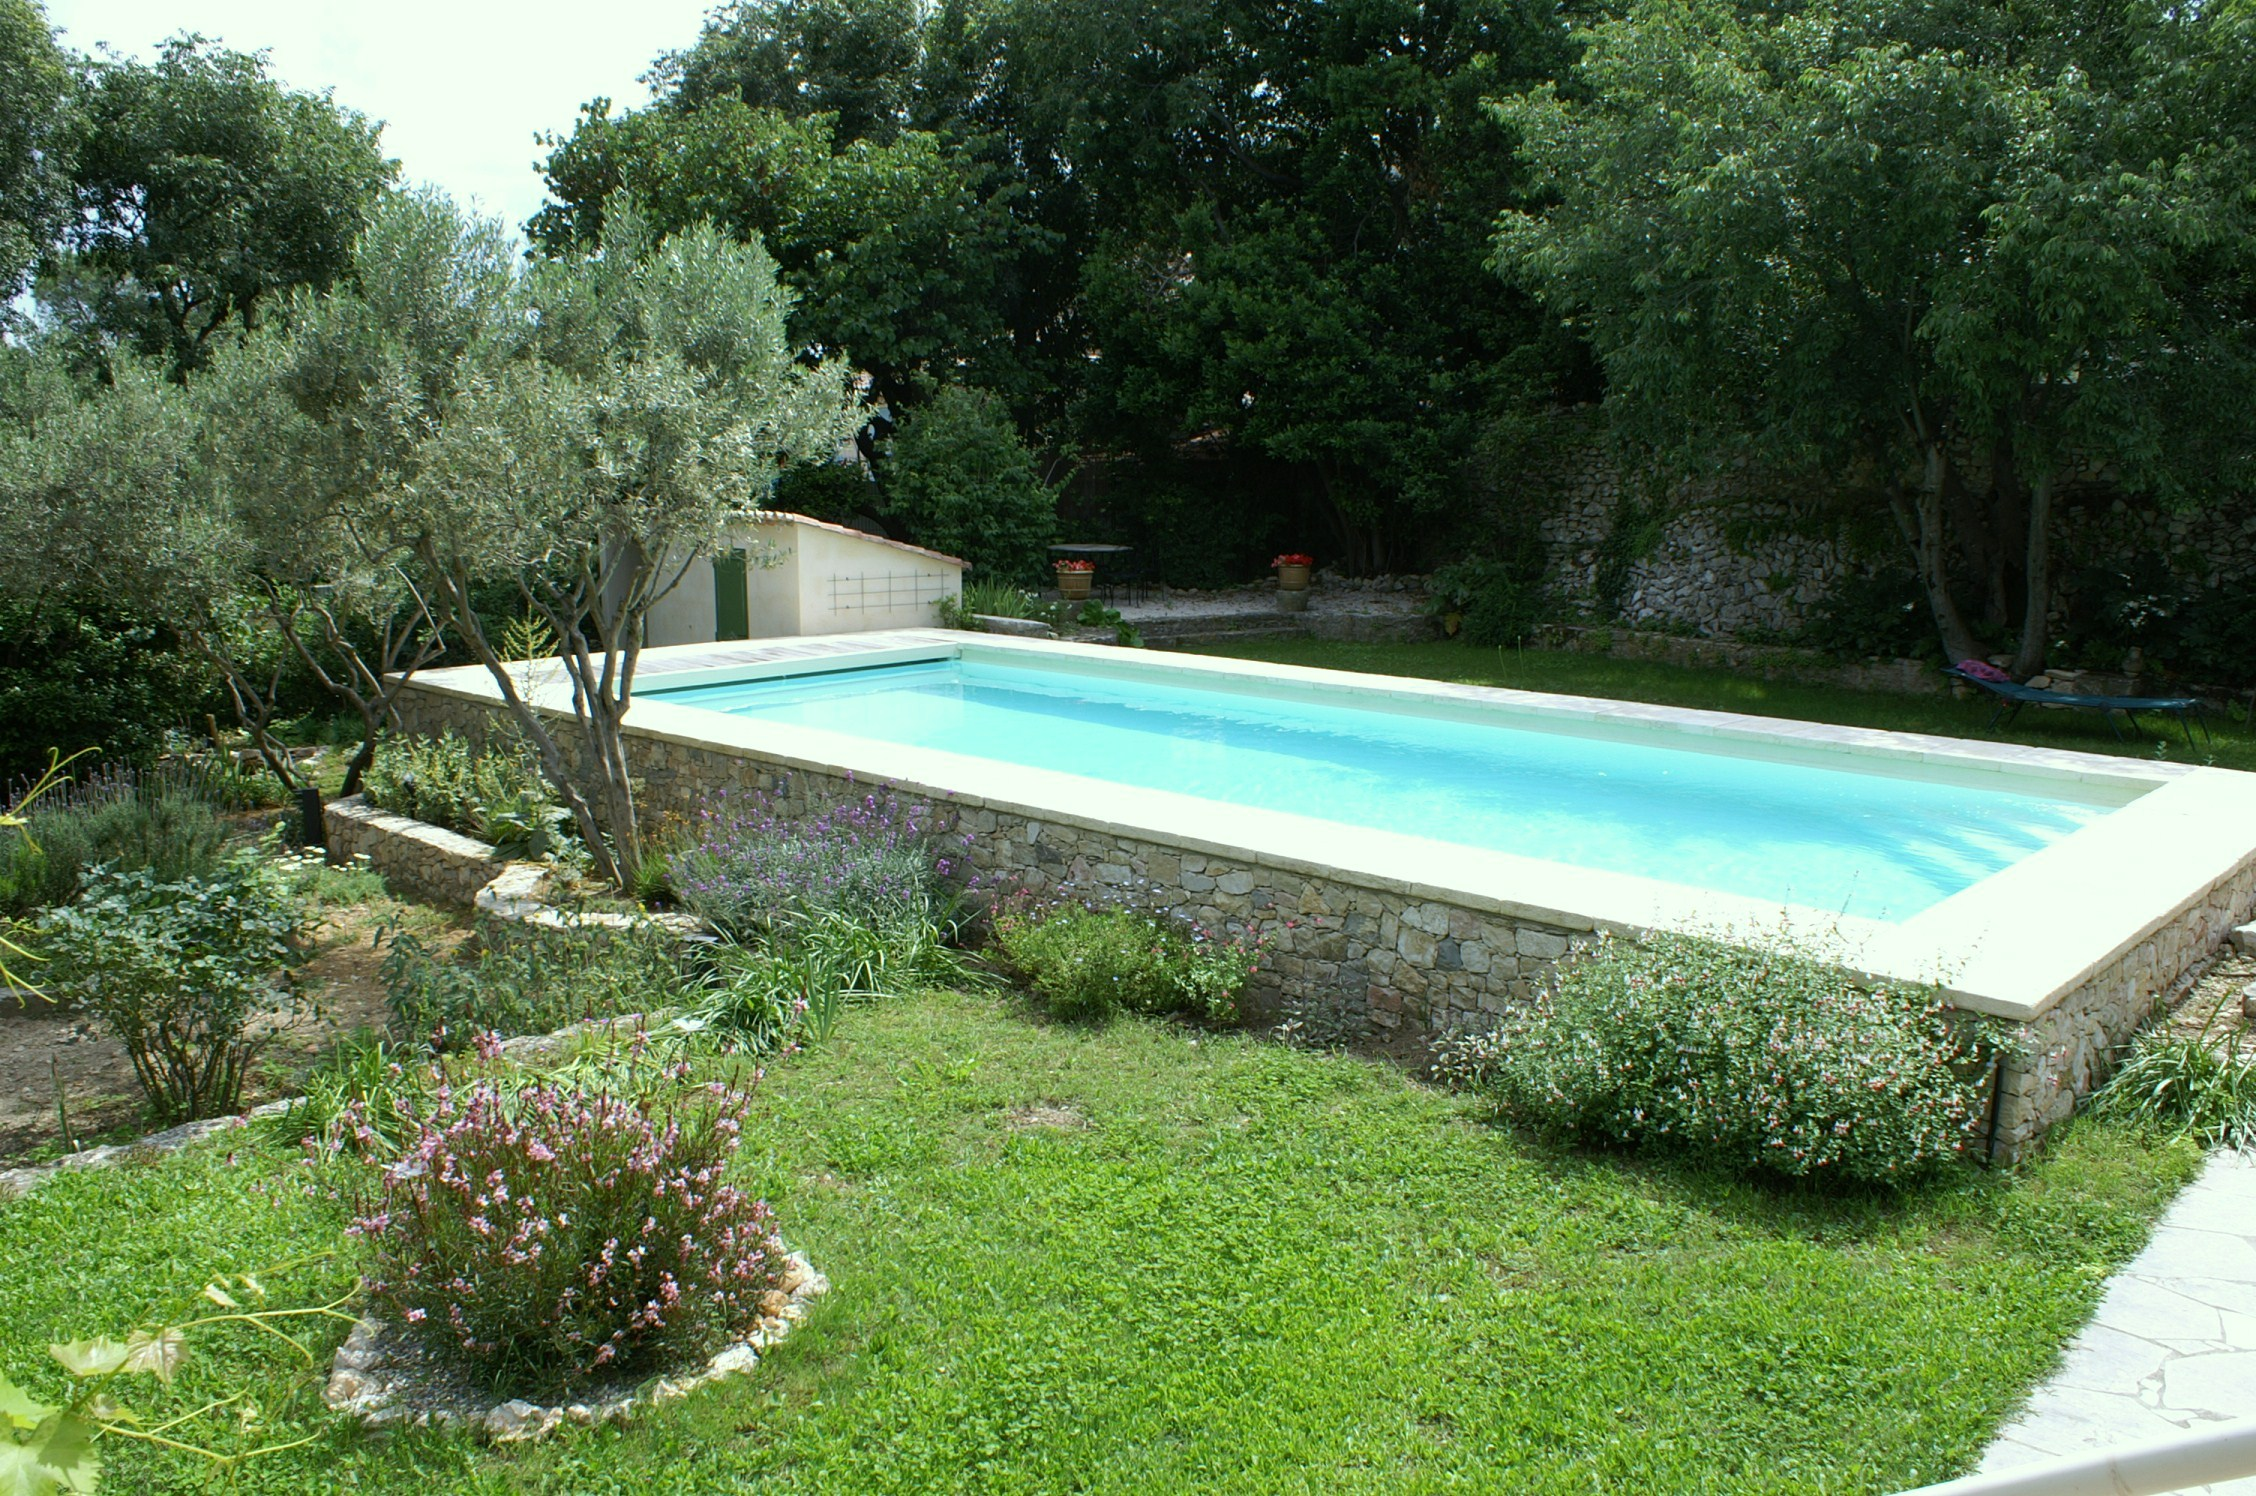 Amnagement piscine hors sol luaccs et la balustrade for Amenagement piscine hors sol photo